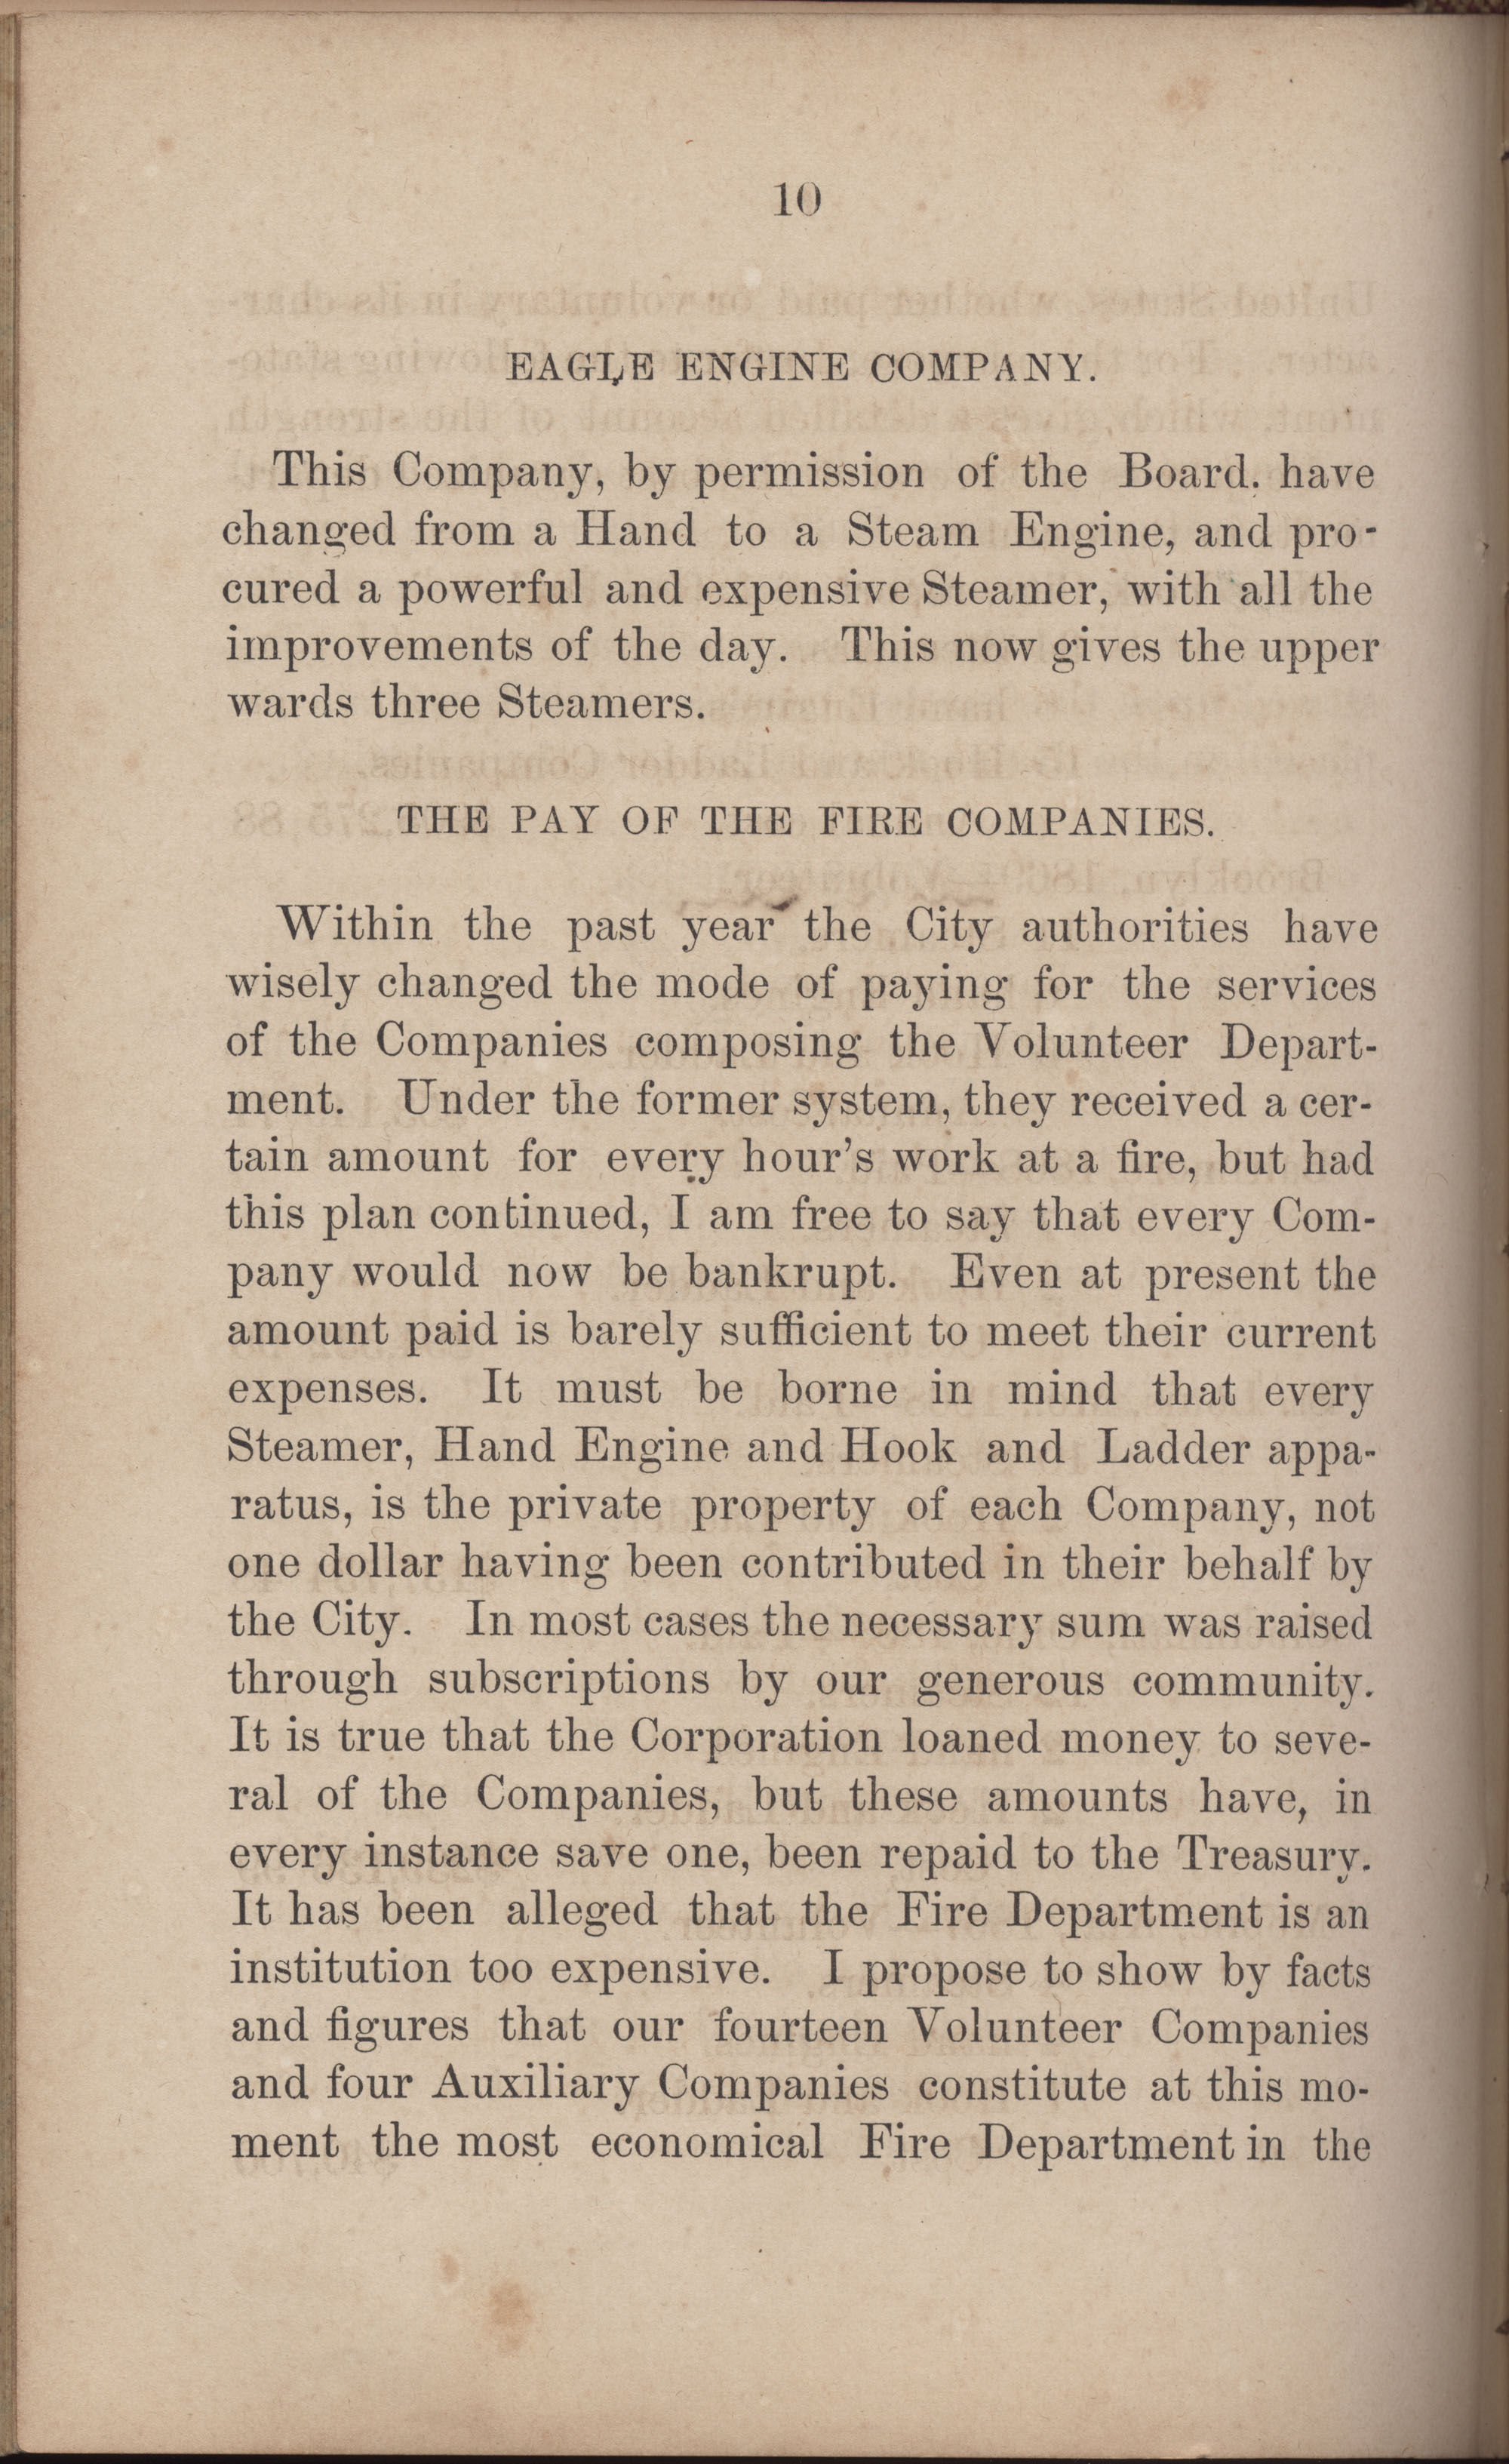 Annual Report of the Chief of the Fire Department of the City of Charleston, page 237